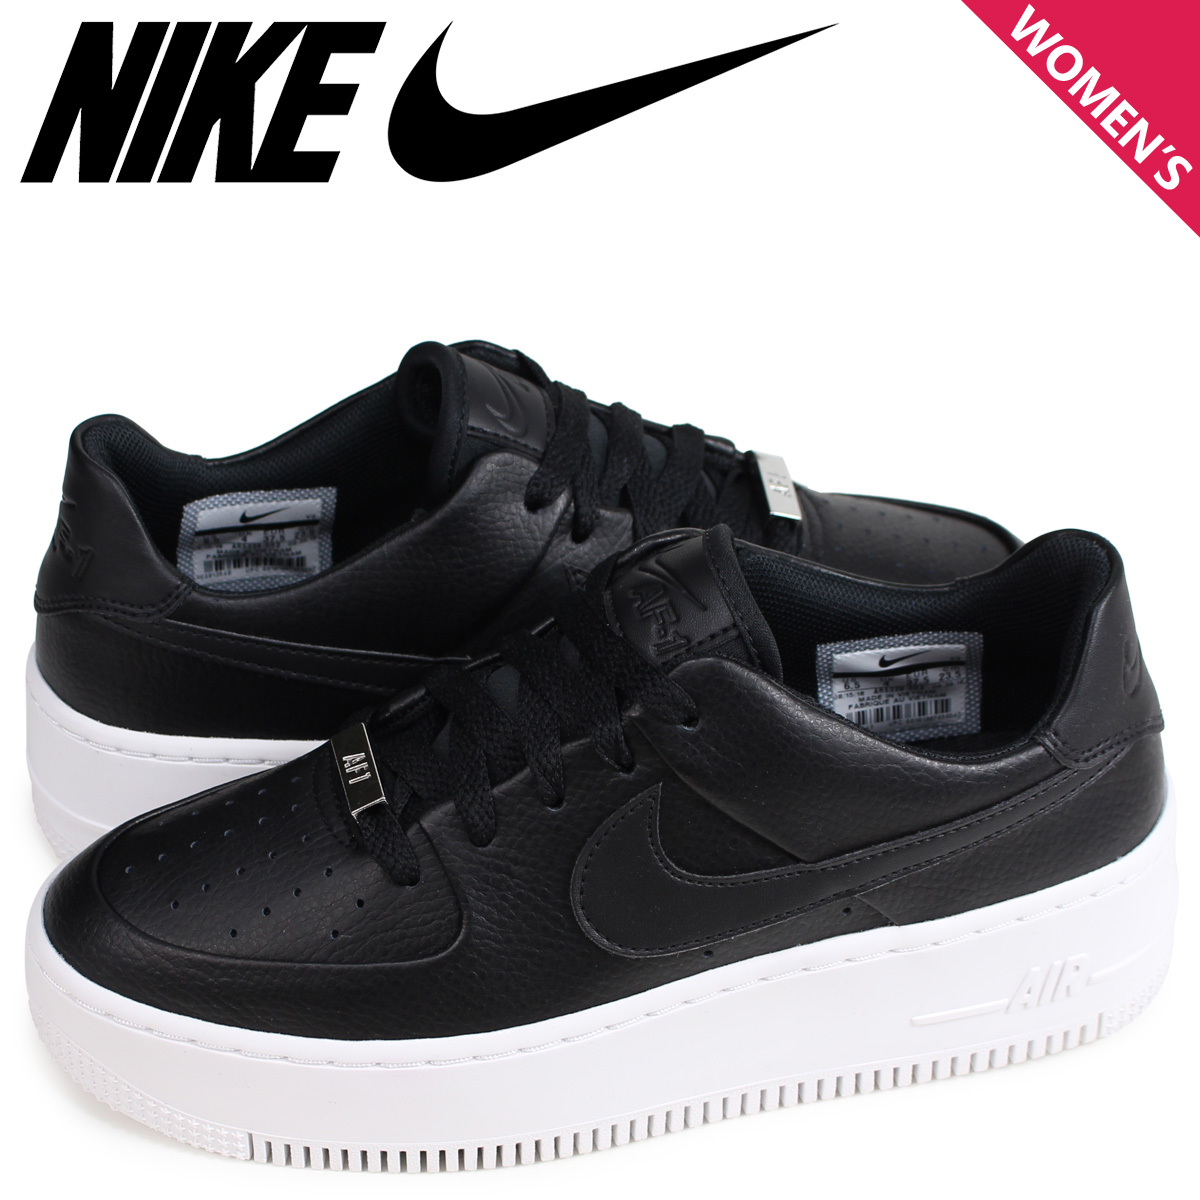 NIKE WMNS AIR FORCE 1 SAGE LOW AF1 Nike air force 1 sneakers Lady's black AR5339 002 [the 110 additional arrival]